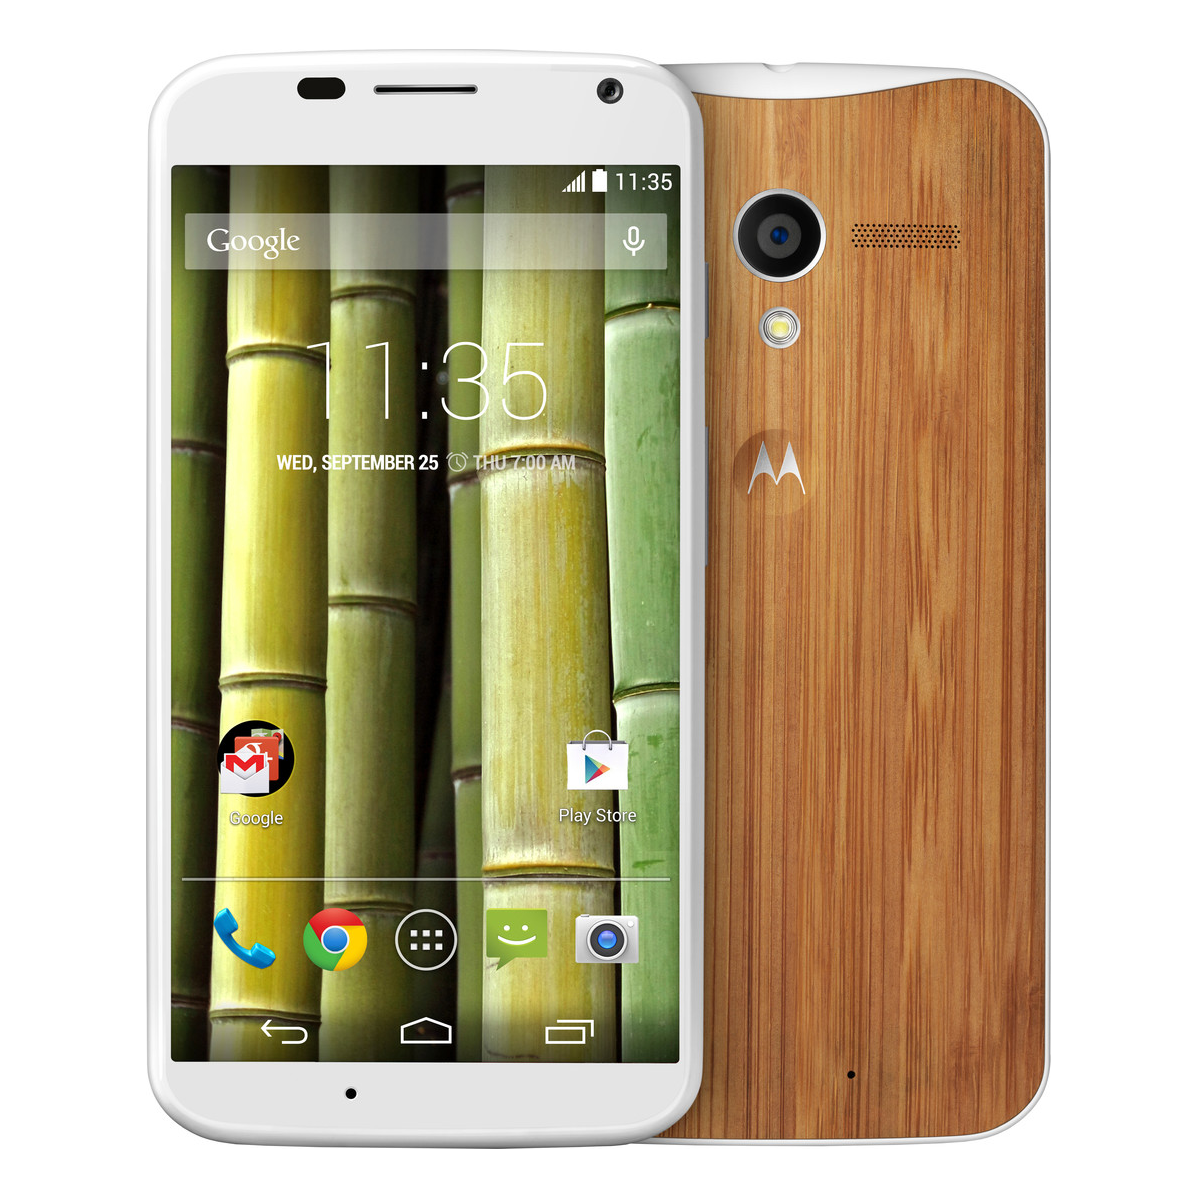 Motorola Moto X XT1058 16GB Android Smartphone - Unlocked GSM - White and Bamboo